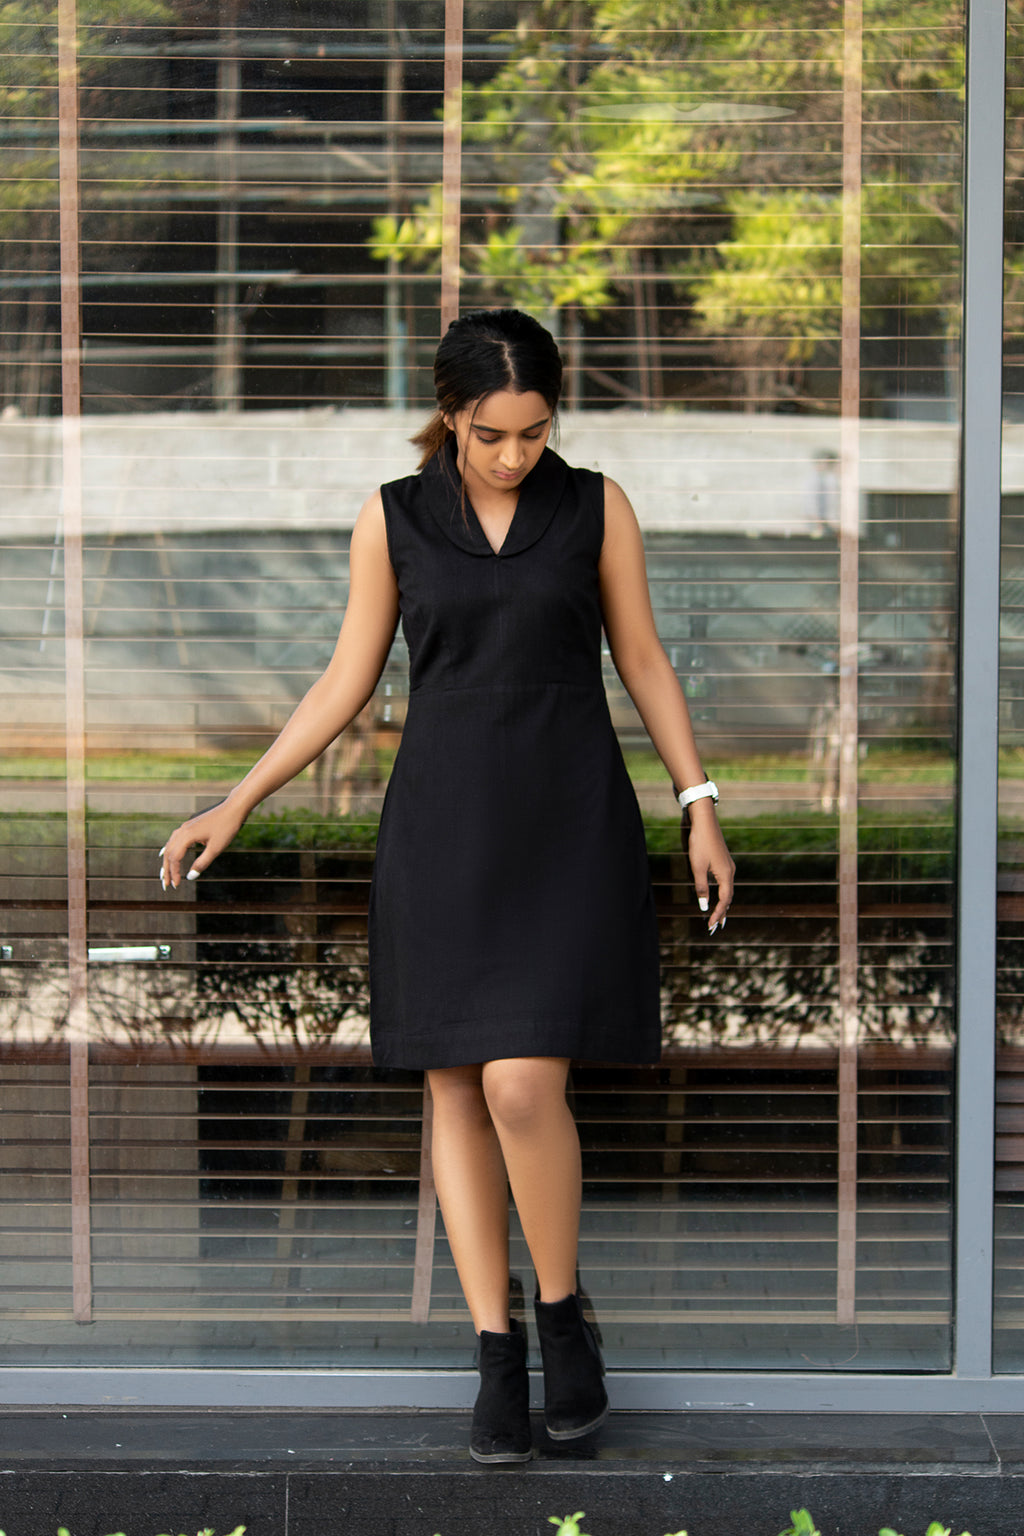 100% handwoven cotton Elongated round collar in a v-neck style Sleeveless black dress Deep pockets on both sides along the seam all season wear black cotton dress with pocket cotton western dress black cotton dress knee length cotton dress cotton little black dress The Kaatn Trail LBD Sustainable Clothing Slow fashion